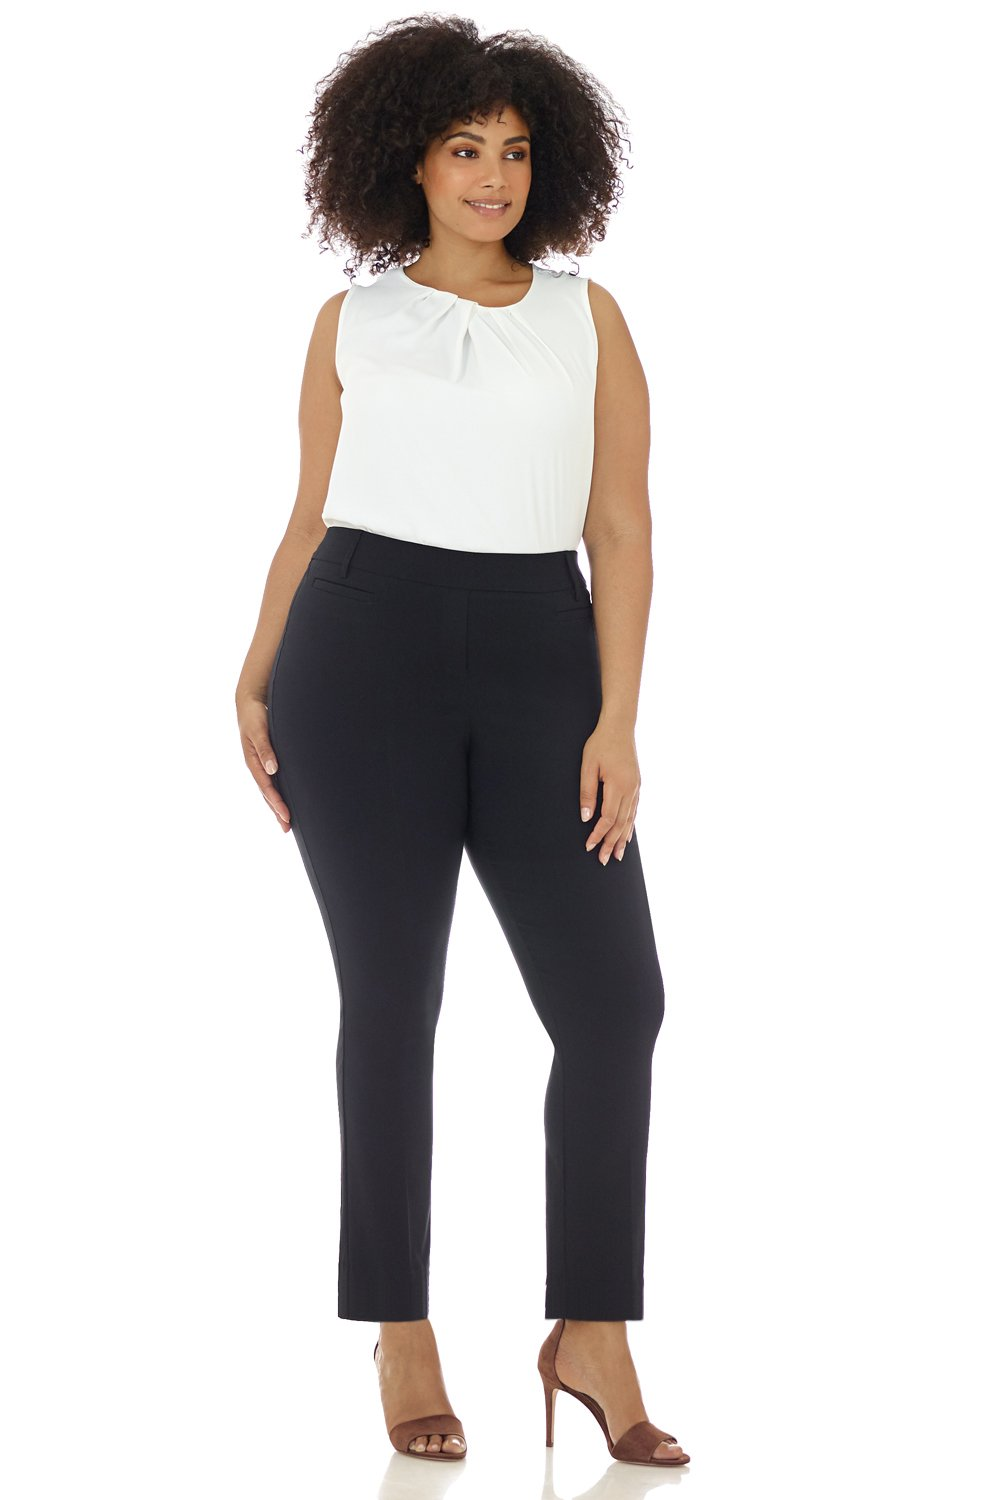 Rekucci Curvy Woman Ease in to Comfort Straight Leg Plus Size Pant w/Tummy Control (16WSHORT,Black)